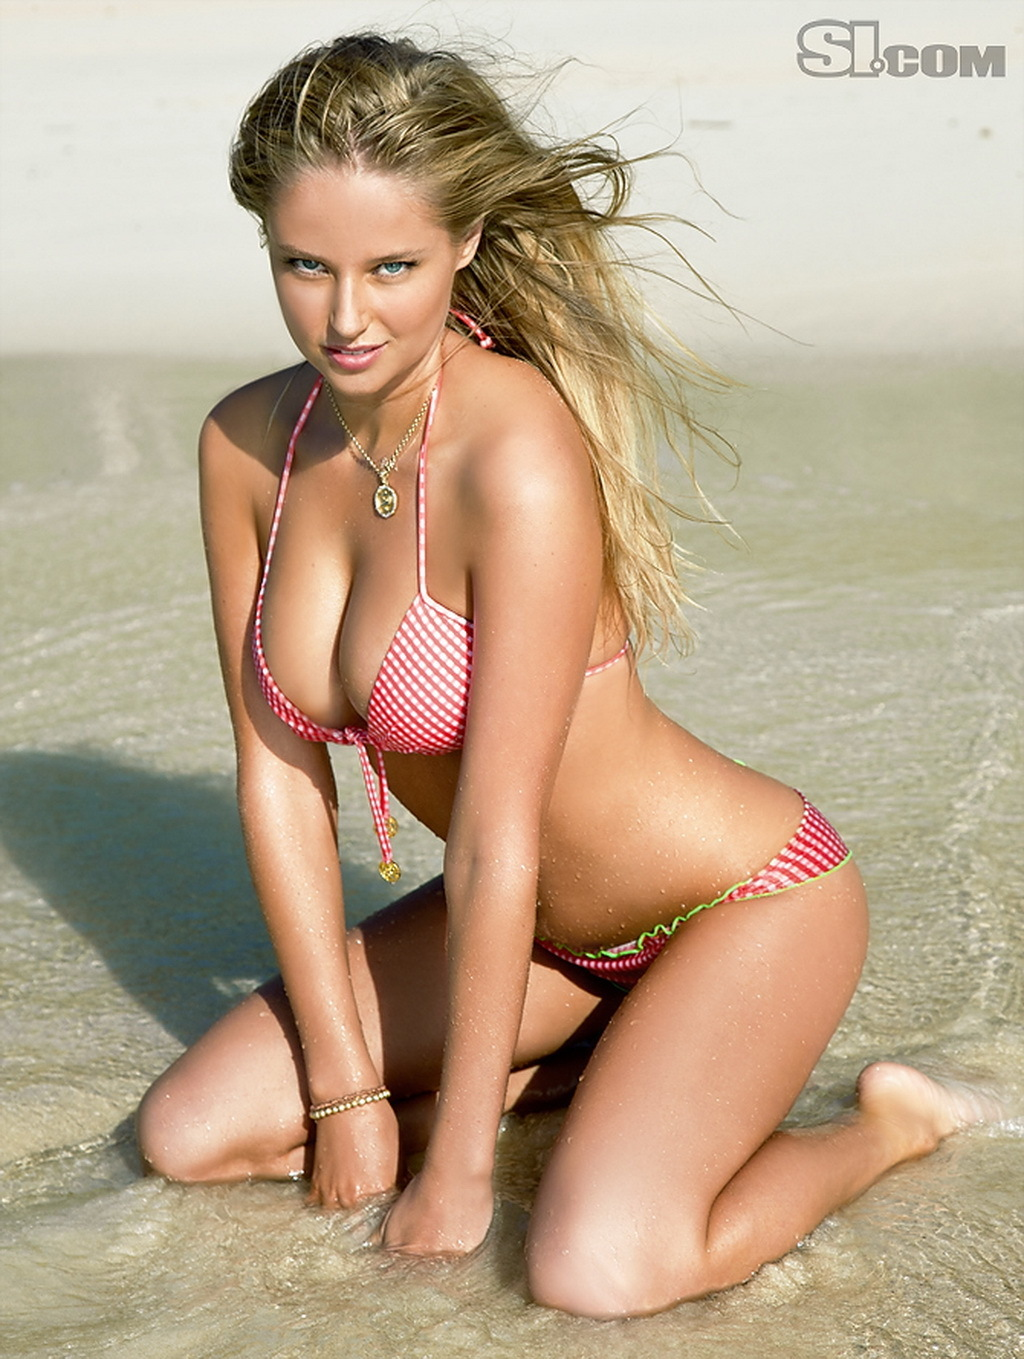 Hot Women Images Genevieve Morton Hd Wallpaper And